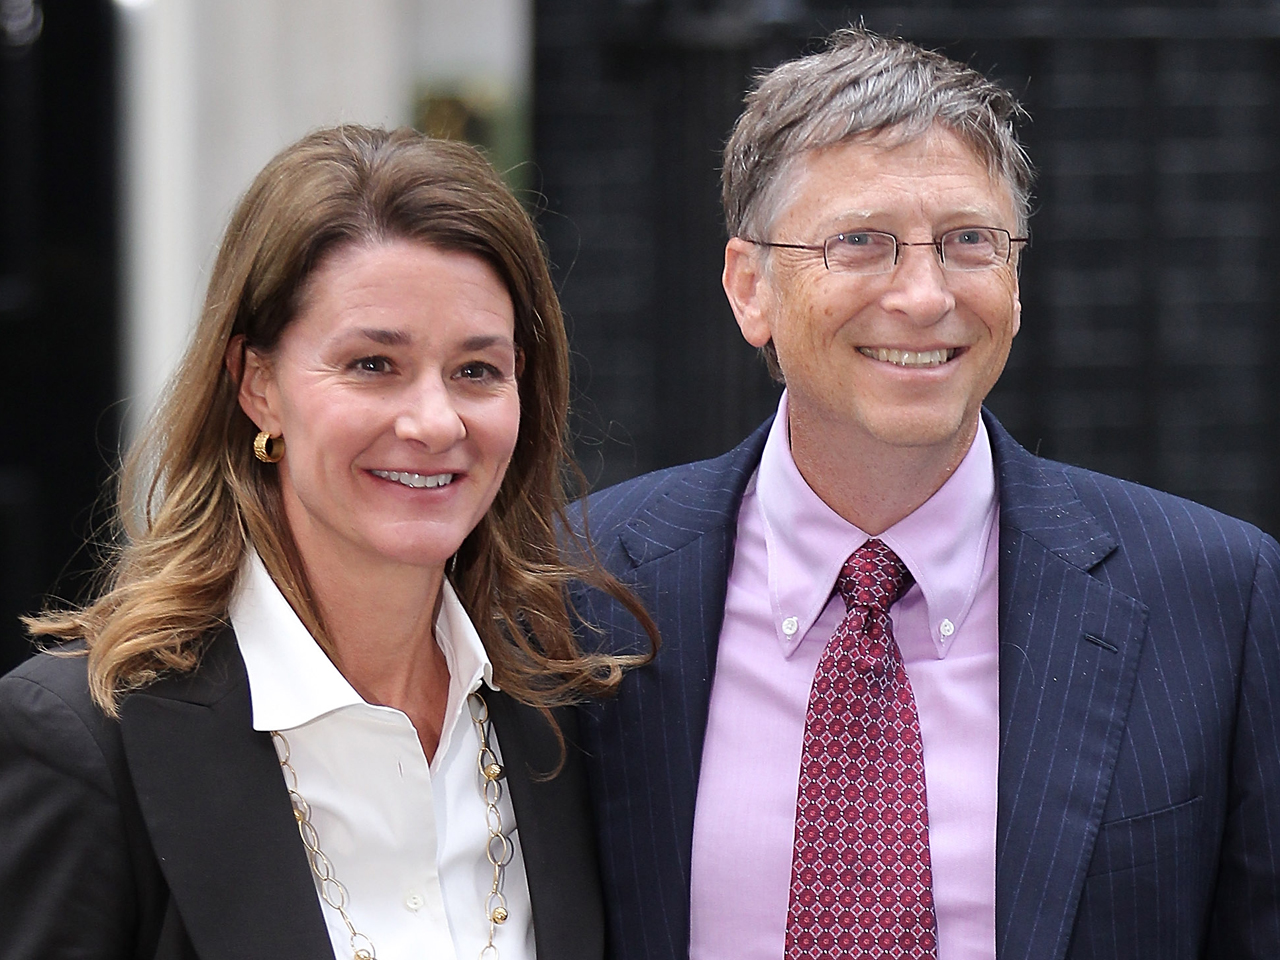 Bill Gates Recalls His 'spontaneous' First Date With Wife